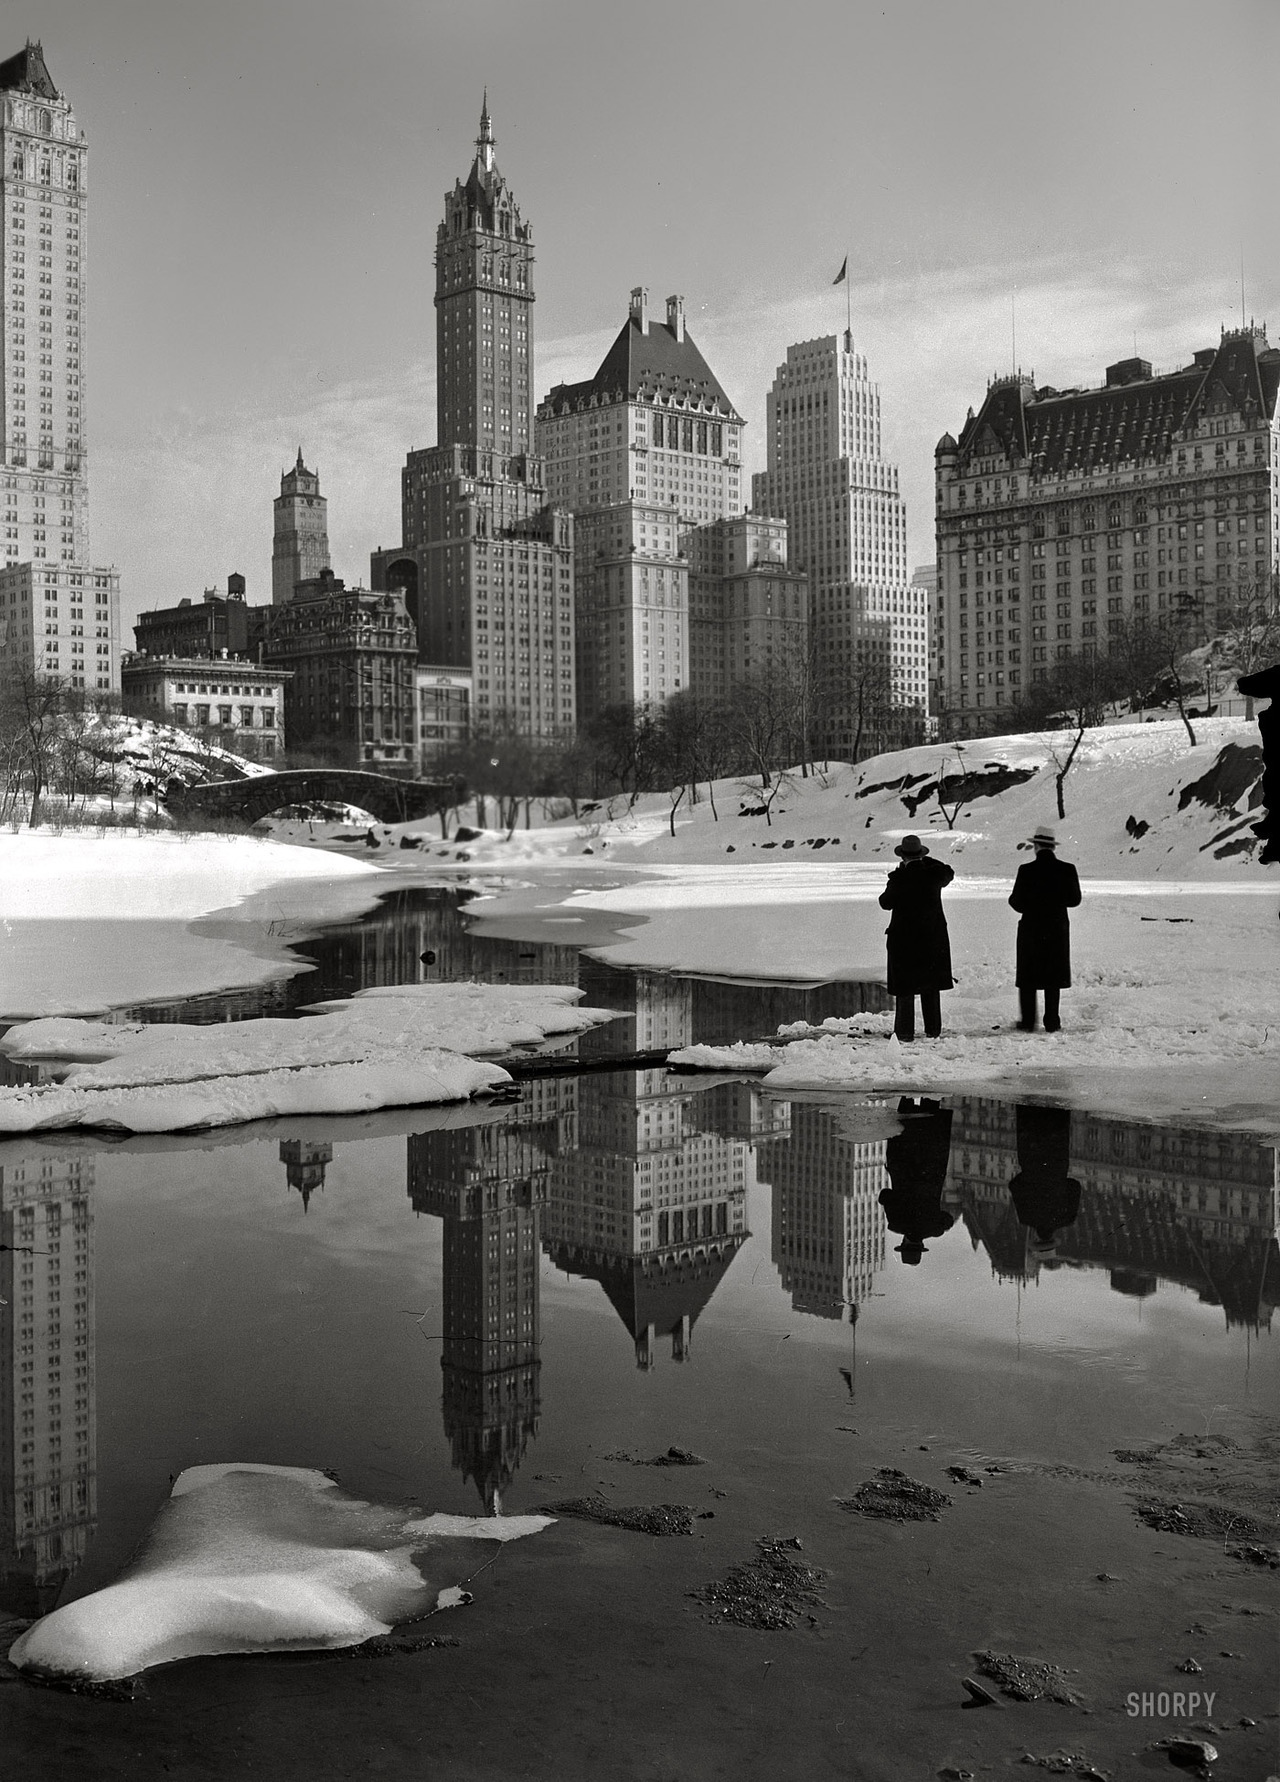 From Central Park: New York City, February 1933 (via)